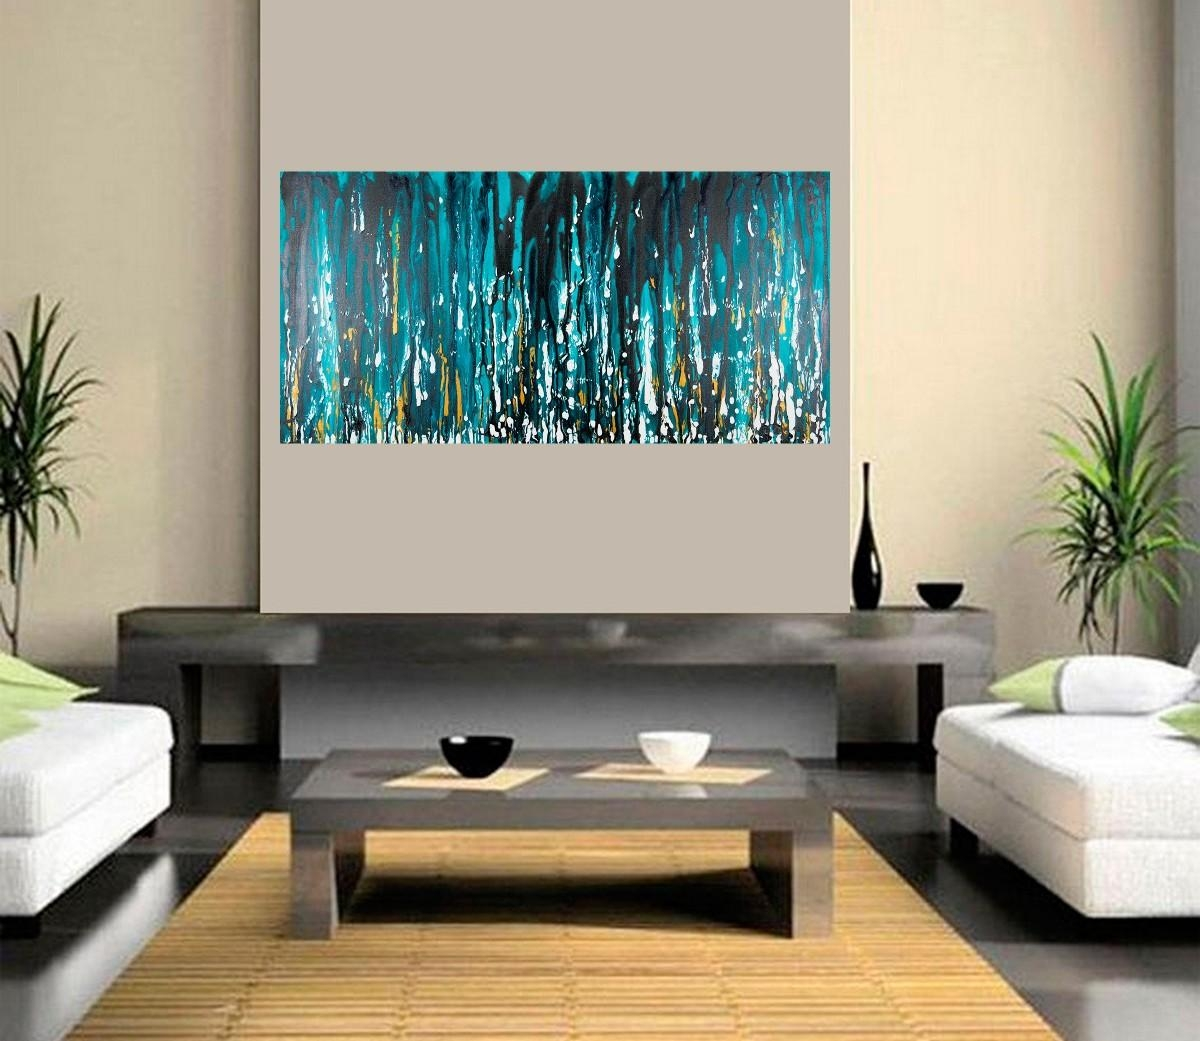 "Meteor Showerqiqigallery 48""x24"" Stretched Canvas Original Pertaining To Turquoise And Black Wall Art (Image 13 of 20)"